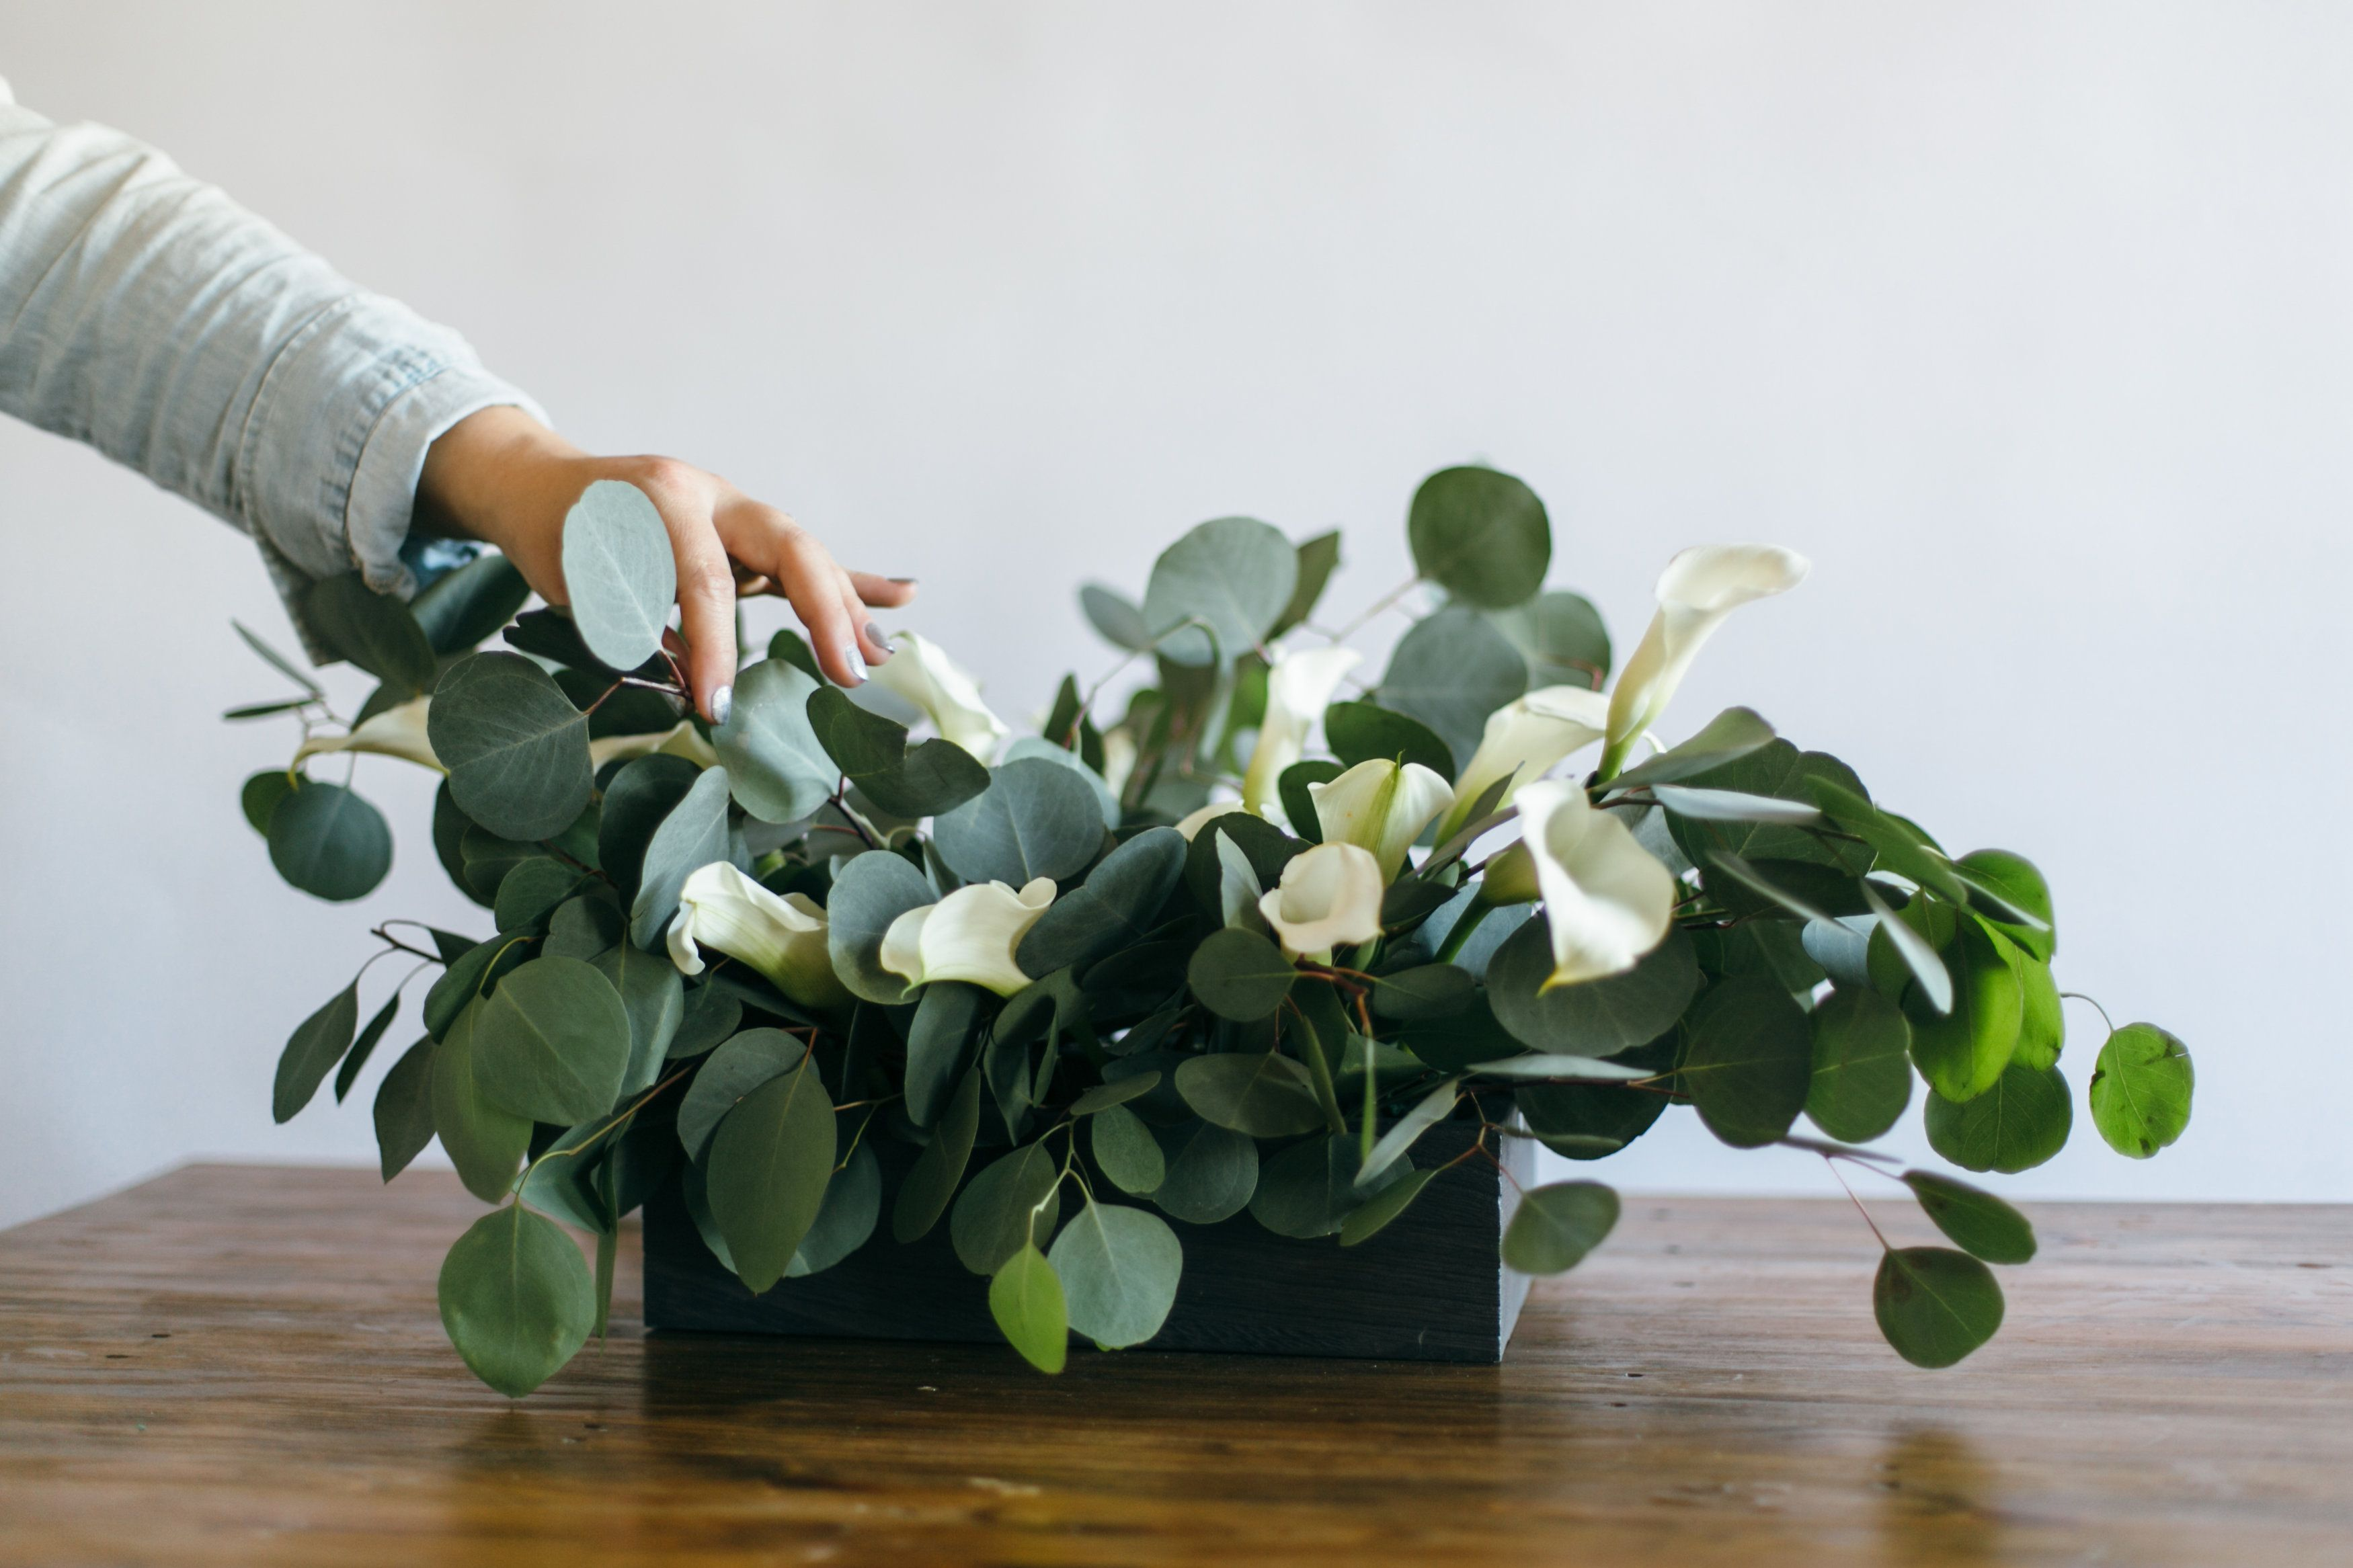 How to DIY a minimal wedding table centerpiece with maximum impact from only two floral ingredients: Eucalyptus & Calla Lilies.